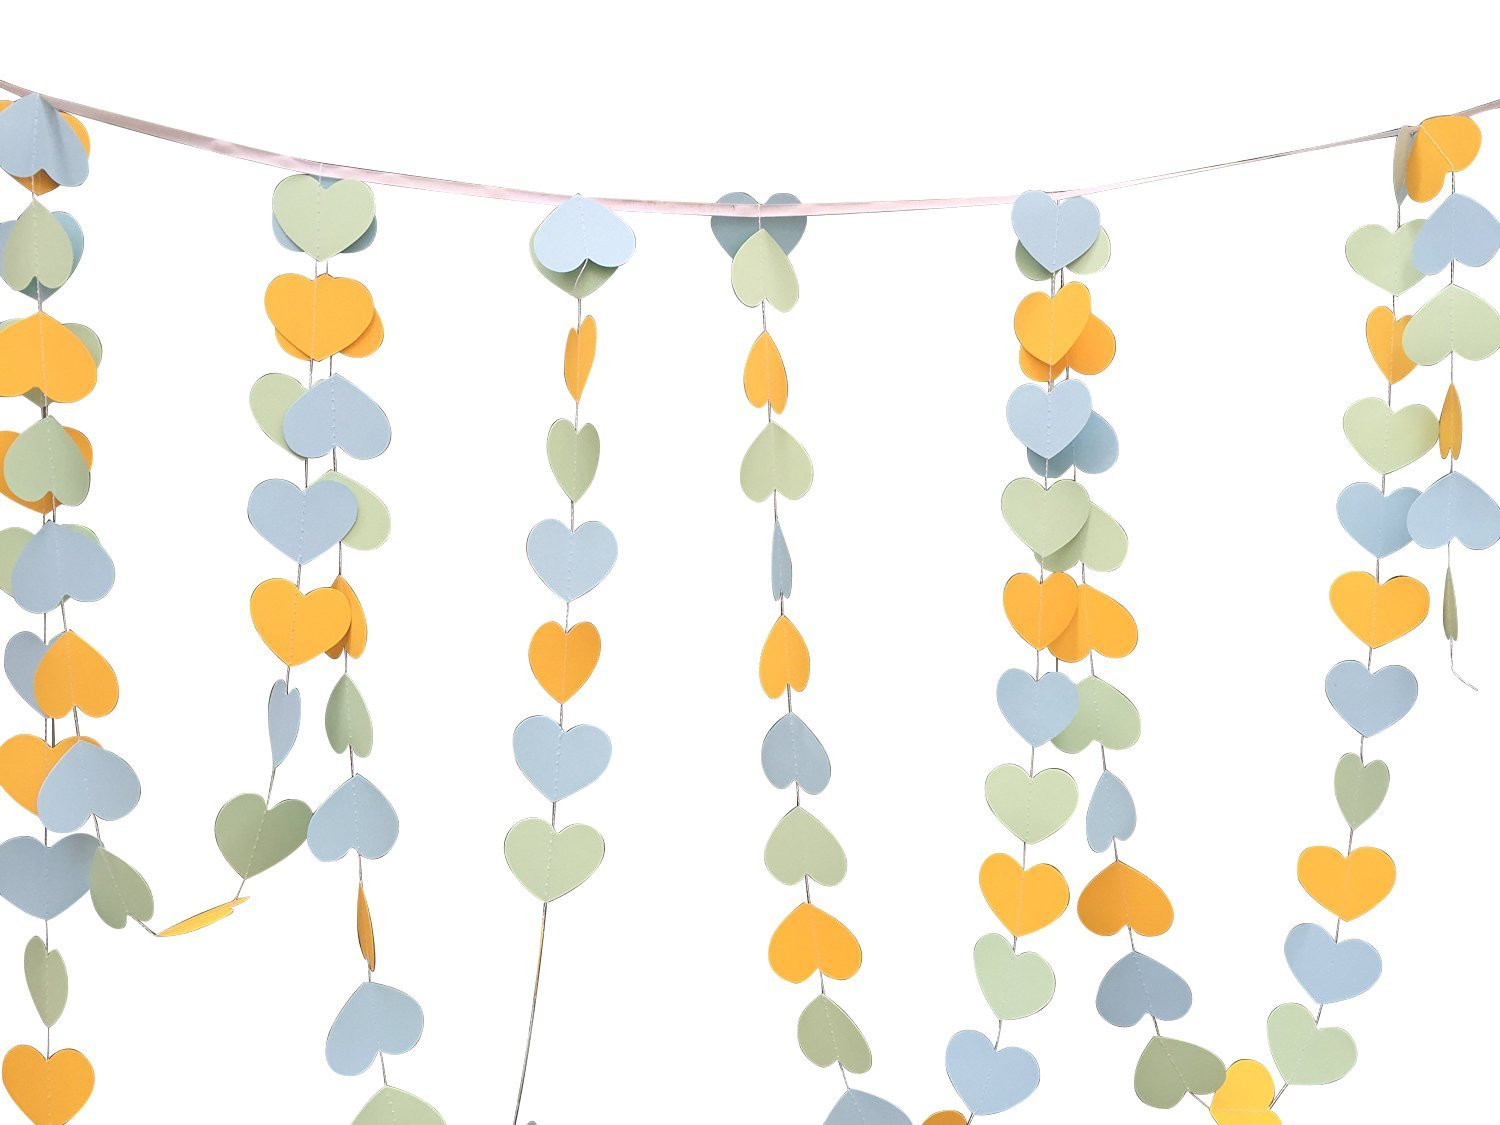 Pack of 4pcs 10-feet Long Paper Sweet Heart Shaped Hanging Decoration String Paper Garland Wedding Birthday Party Baby Shower Background Decorative Color Yellow Blue Mint